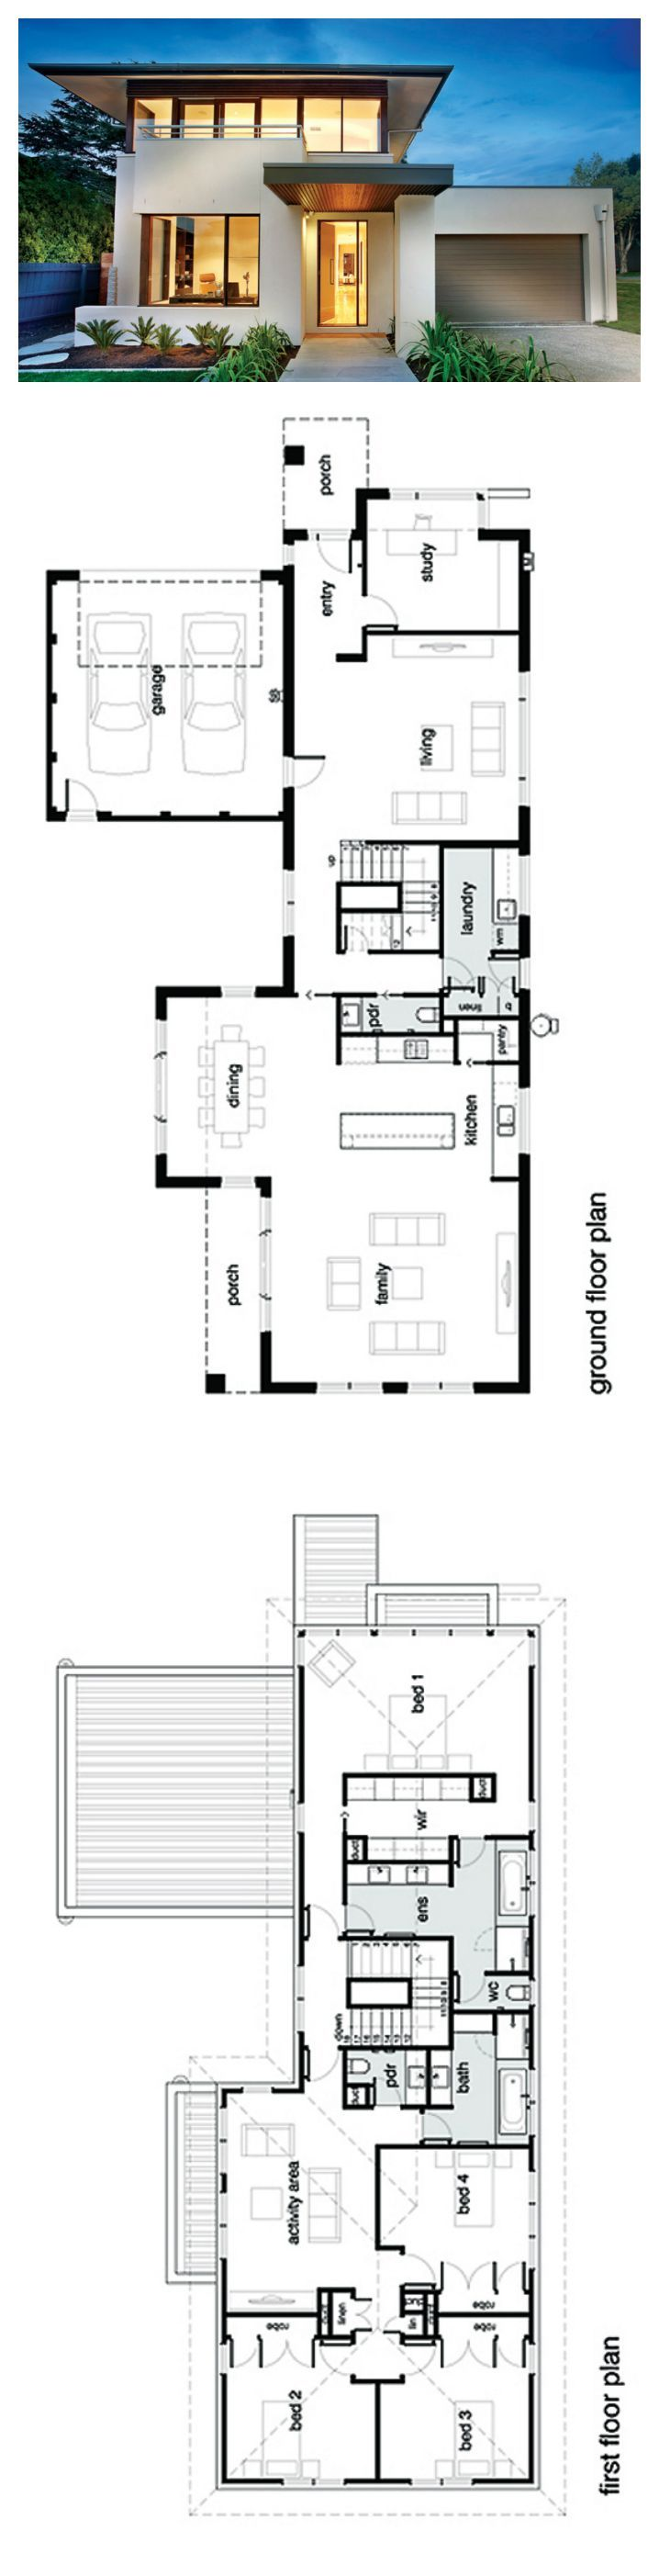 modern 2 bedroom house plans best 25 modern house plans ideas on 19206